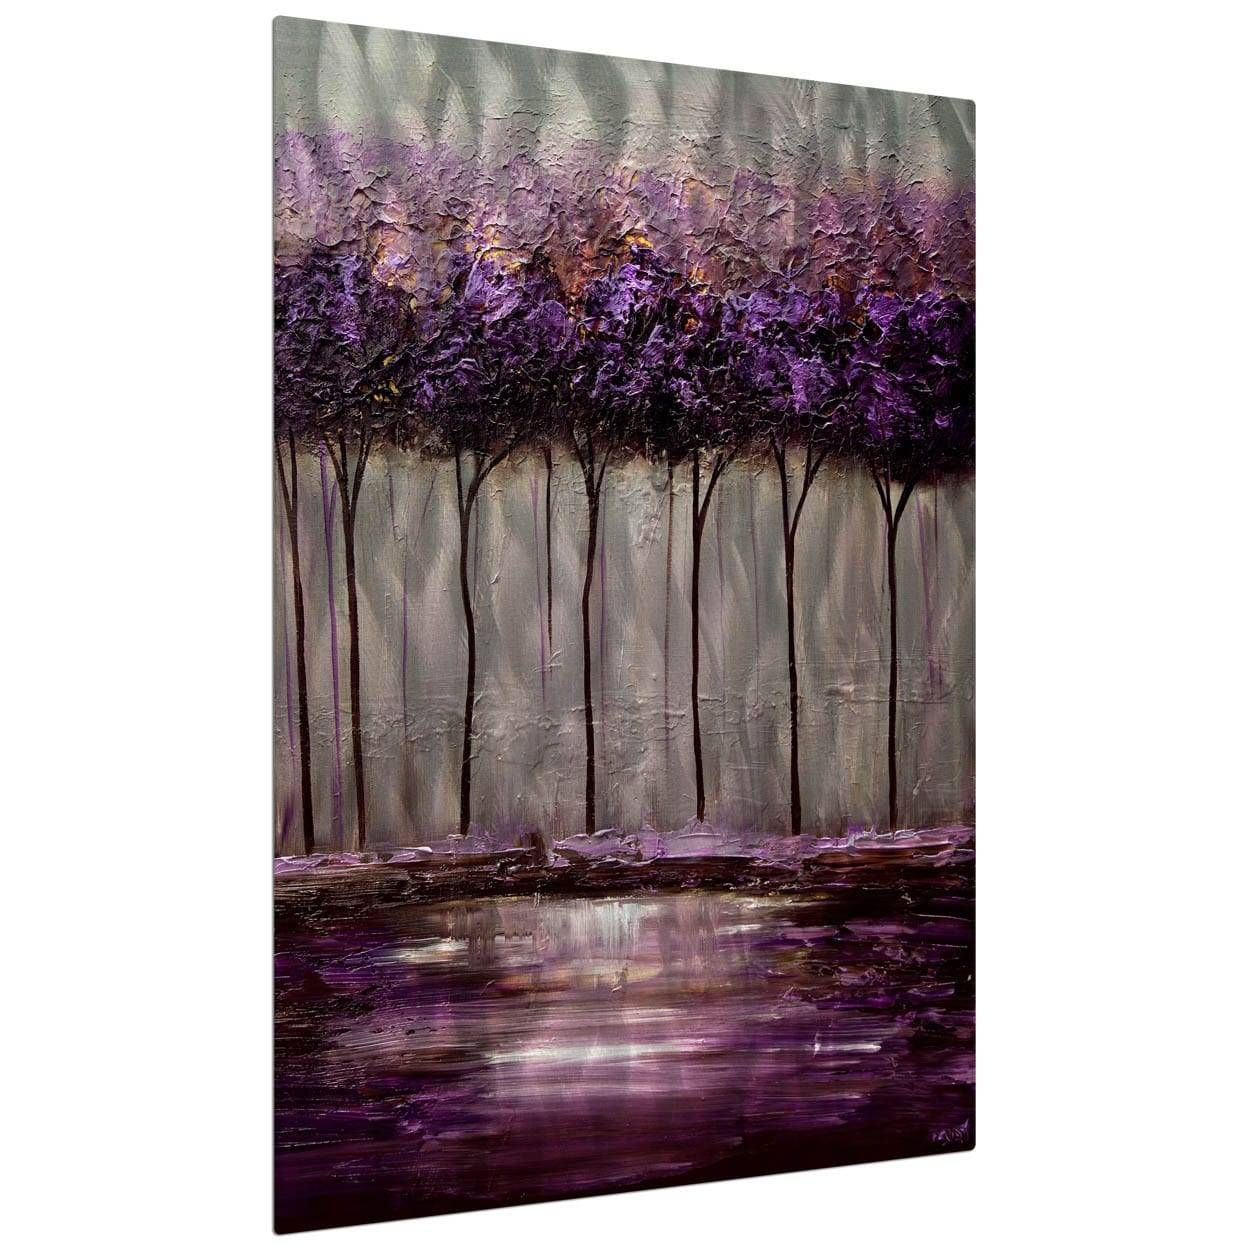 Osnat 'purple Scent 1' Metal Wall Art – Free Shipping Today For Recent Overstock Metal Wall Art (View 16 of 20)